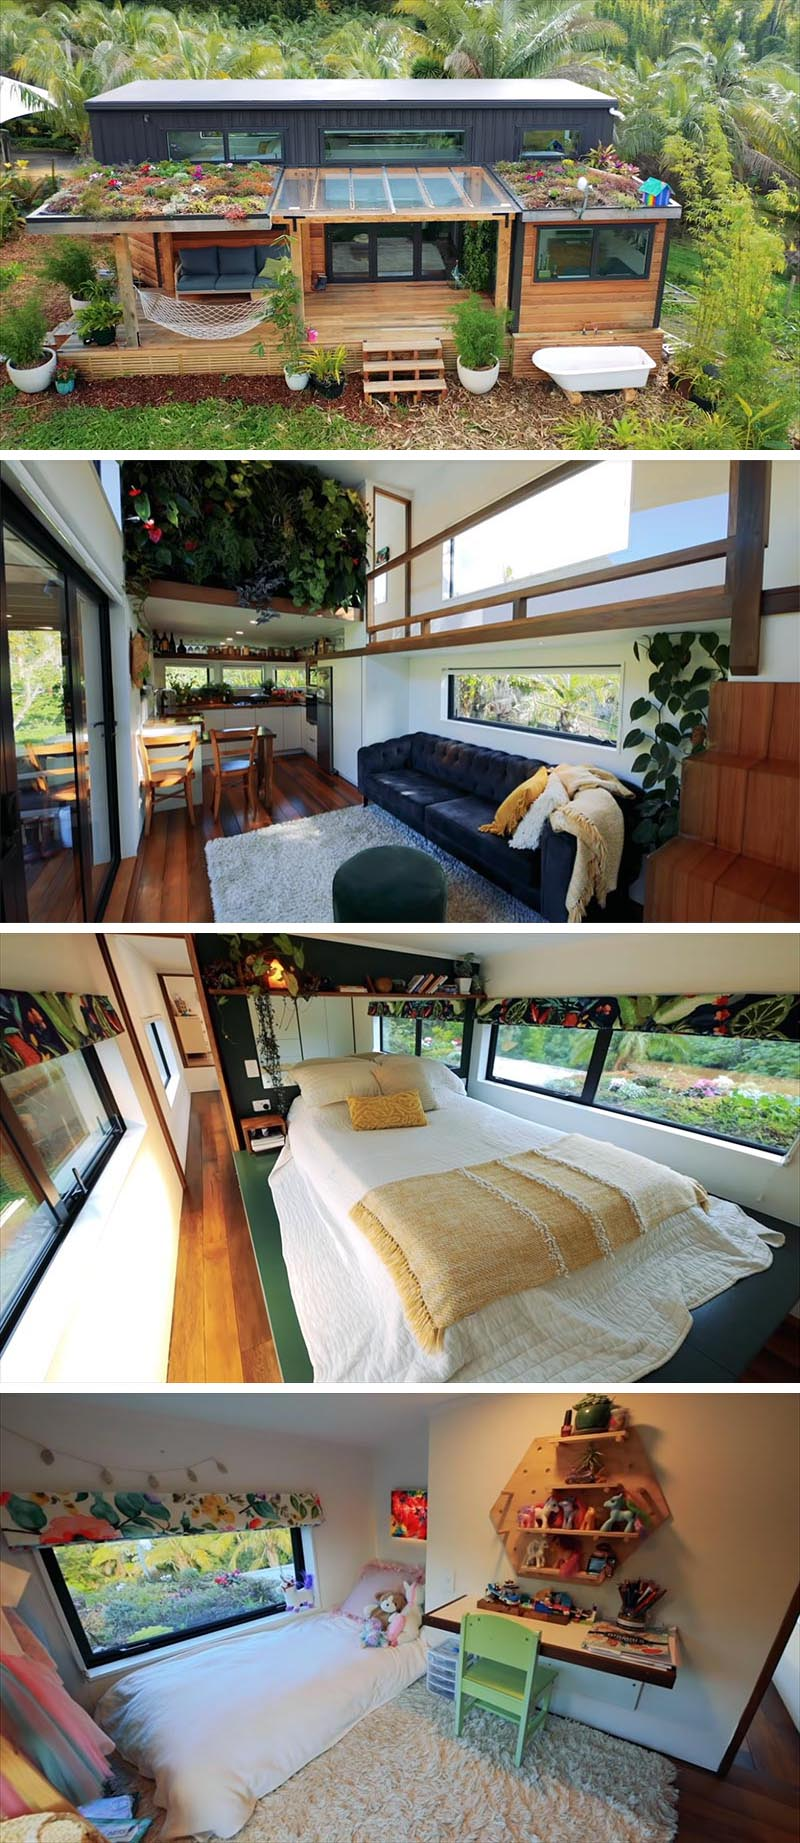 Shaye of Shayes Tiny Homes, along with her team, has designed and built a modern tiny house for herself and her young daughter, that features two lofted bedrooms, an add-on spare room, and an interior green wall.